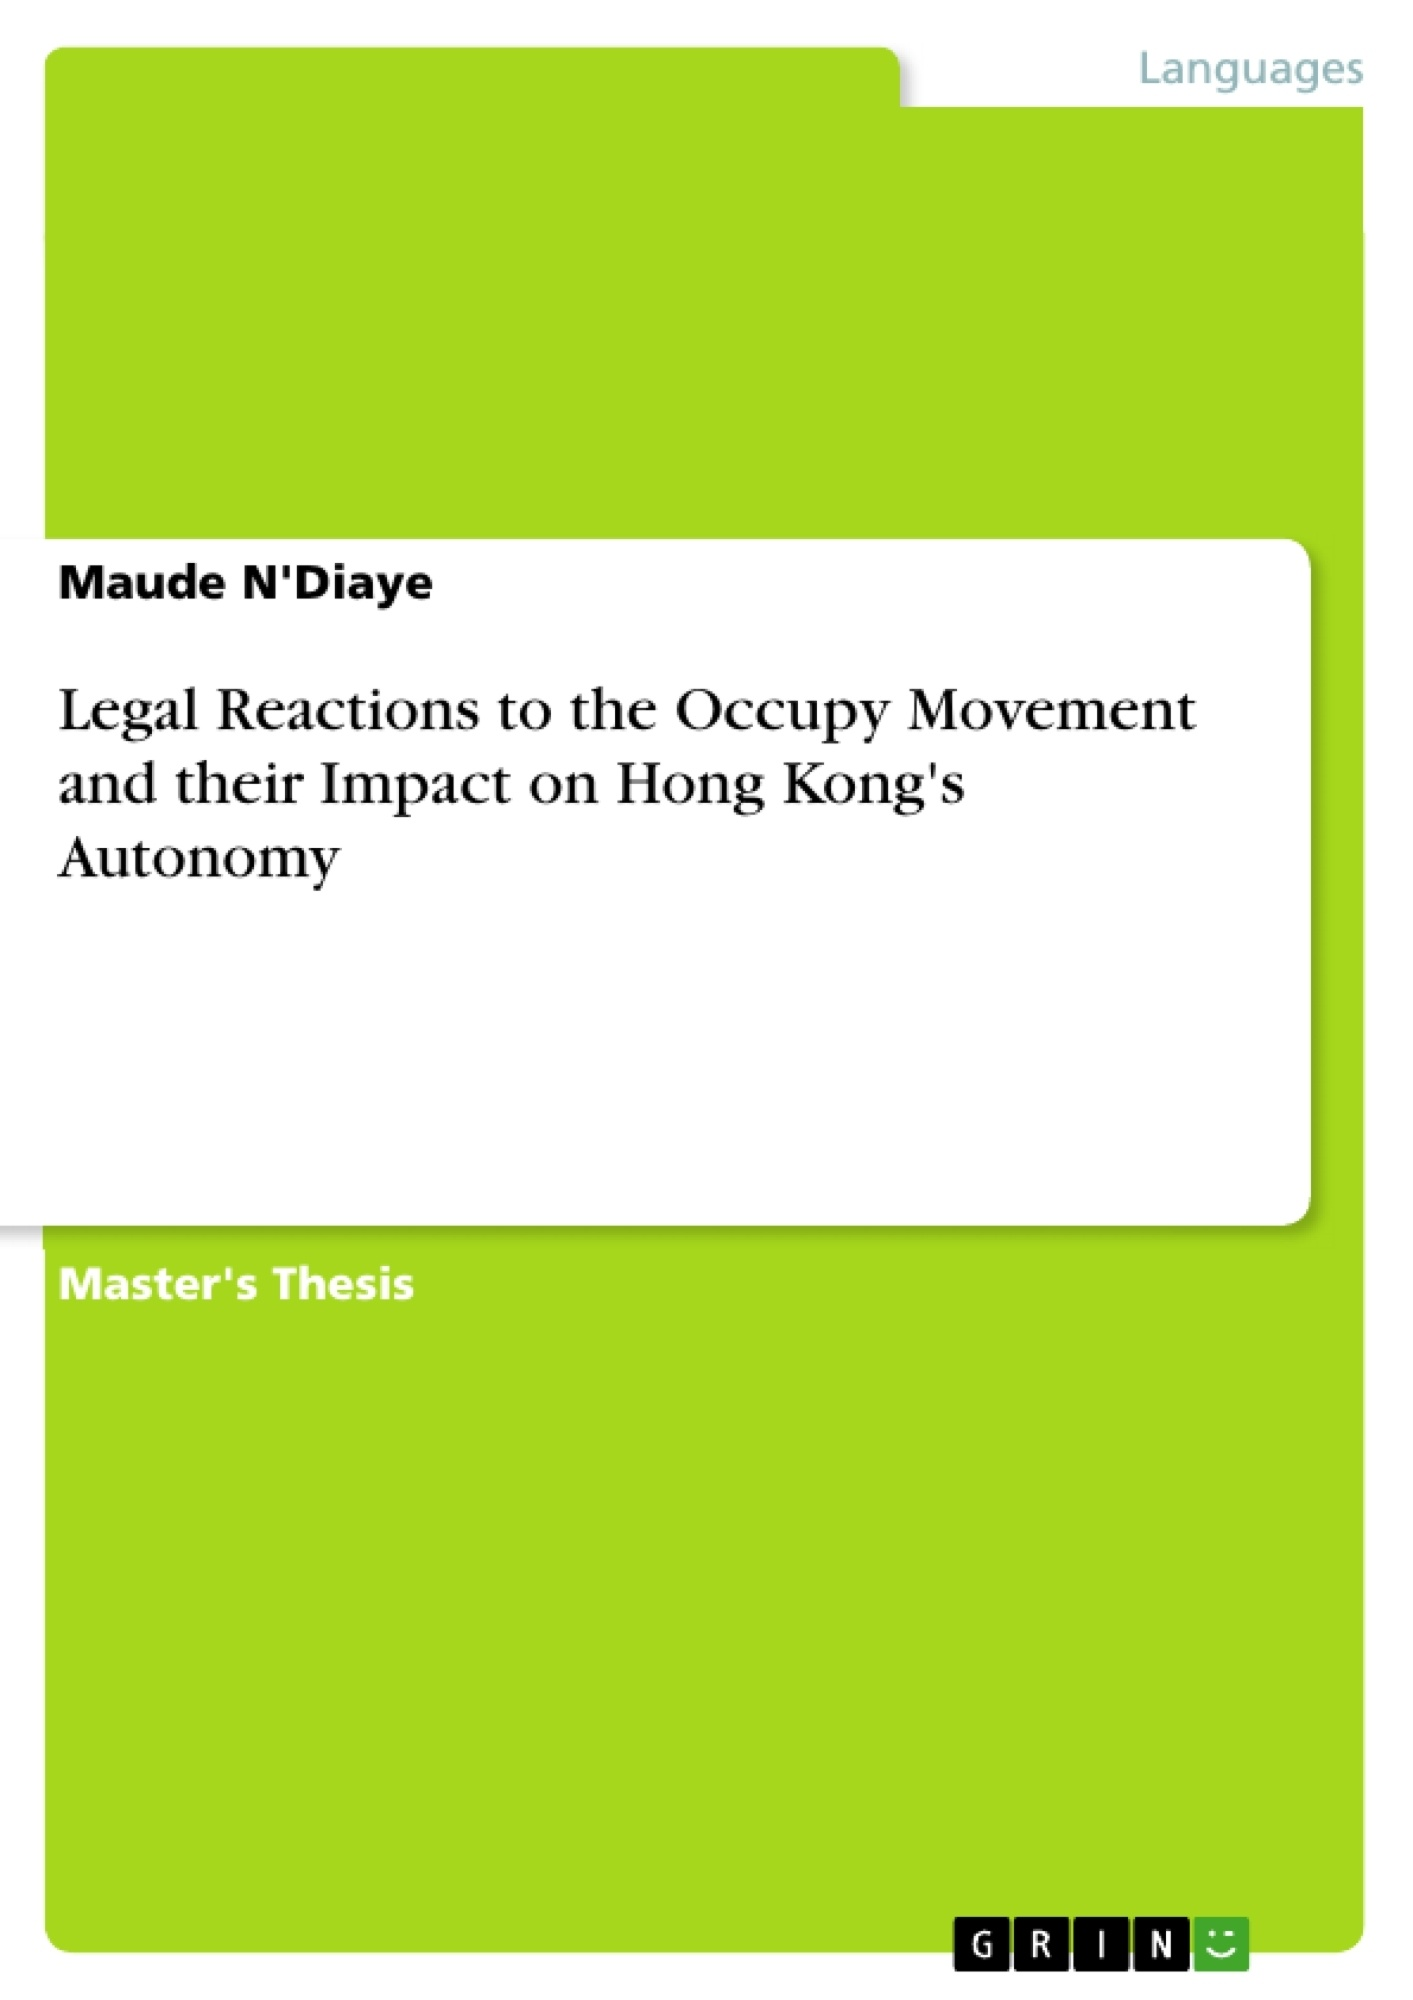 Title: Legal Reactions to the Occupy Movement and their Impact on Hong Kong's Autonomy